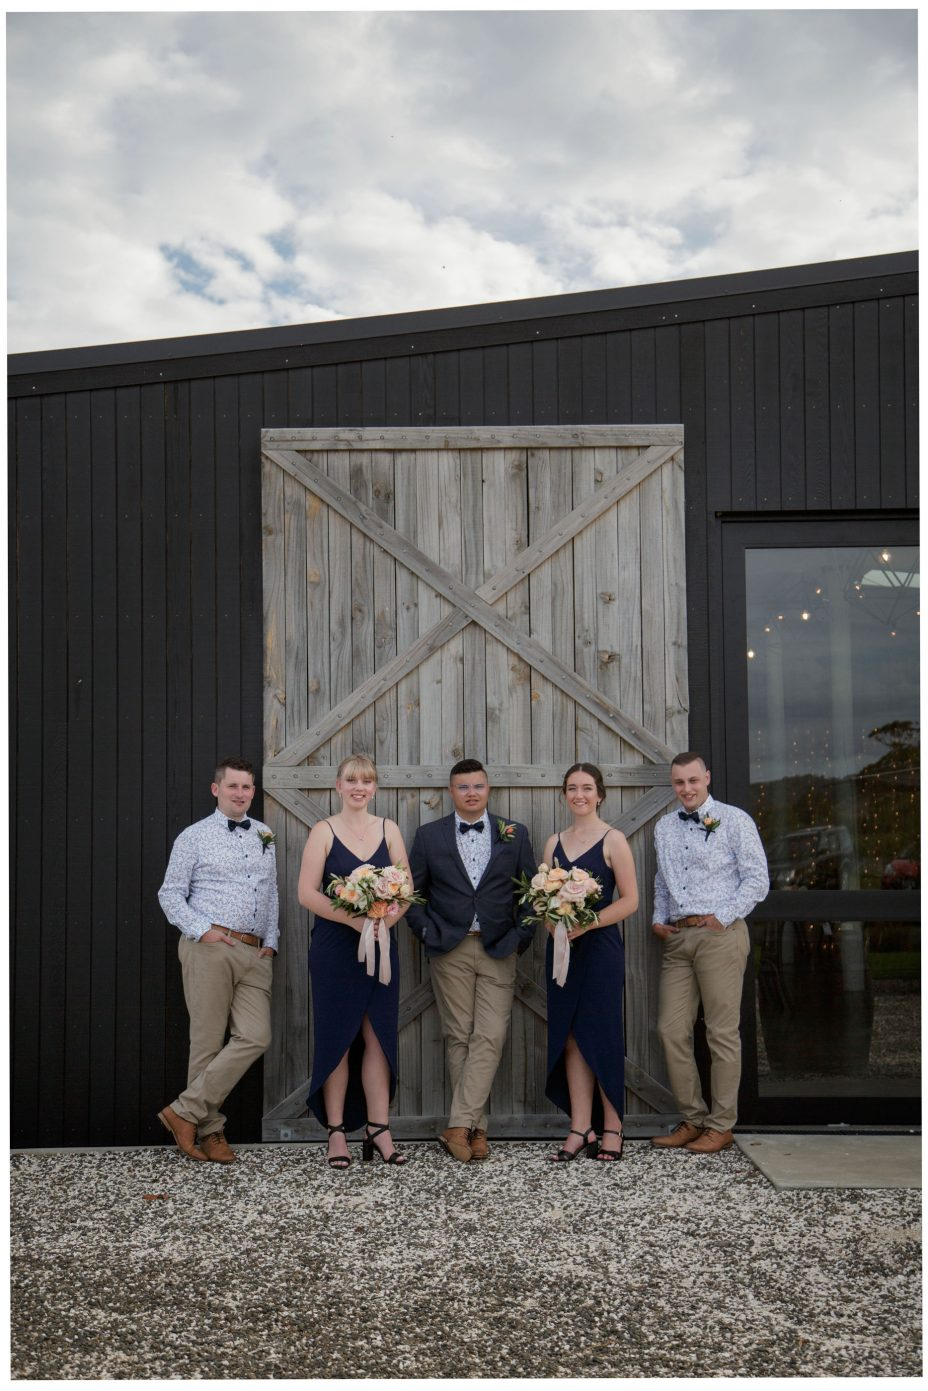 Bride groom and bridal party posed against the large wooden doors of The Barn wedding reception venue at The Hunting Lodge Winery